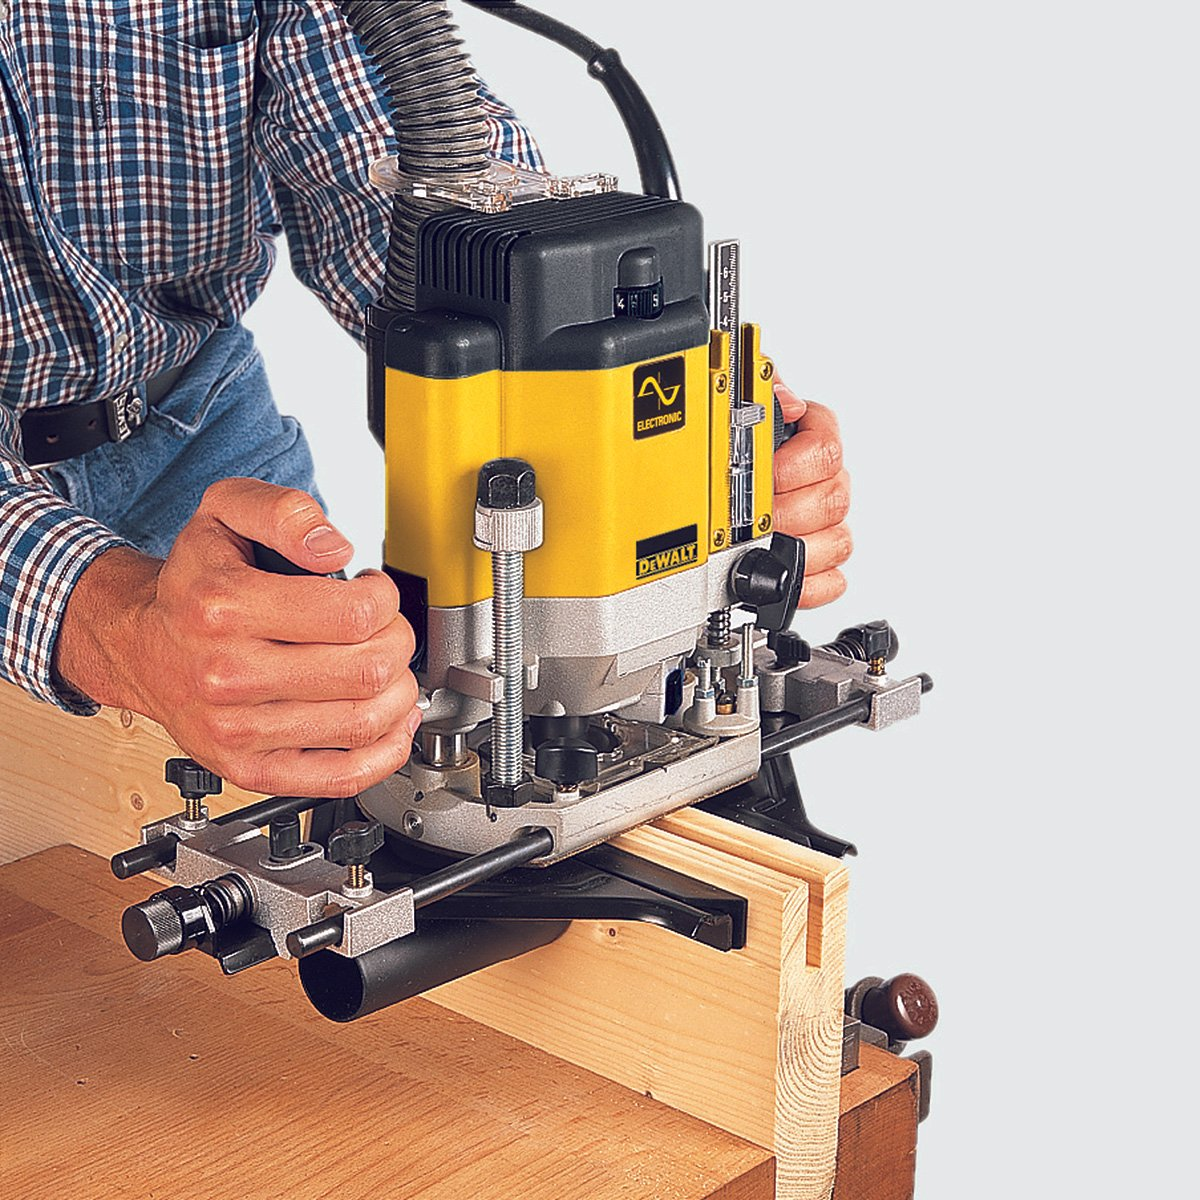 Dewalt dw625 3 horsepower variable speed electronic plunge router dewalt dw625 3 horsepower variable speed electronic plunge router power routers amazon greentooth Gallery